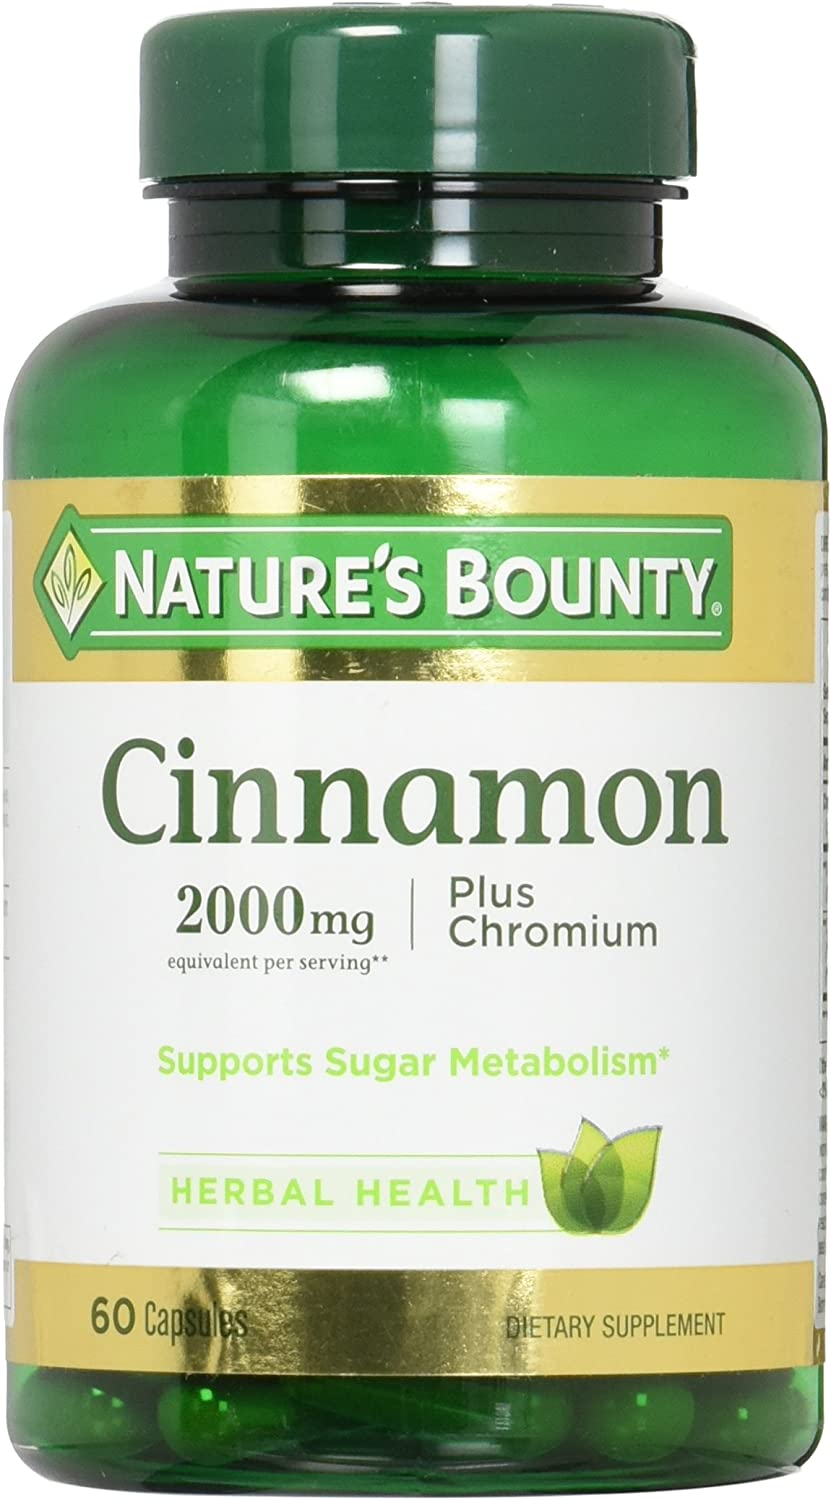 Nature's Bounty Cinnamon Pills and Chromium Herbal Health Supplement, Promotes Sugar Metabolism and Heart Health, 2000g, 60 Capsules